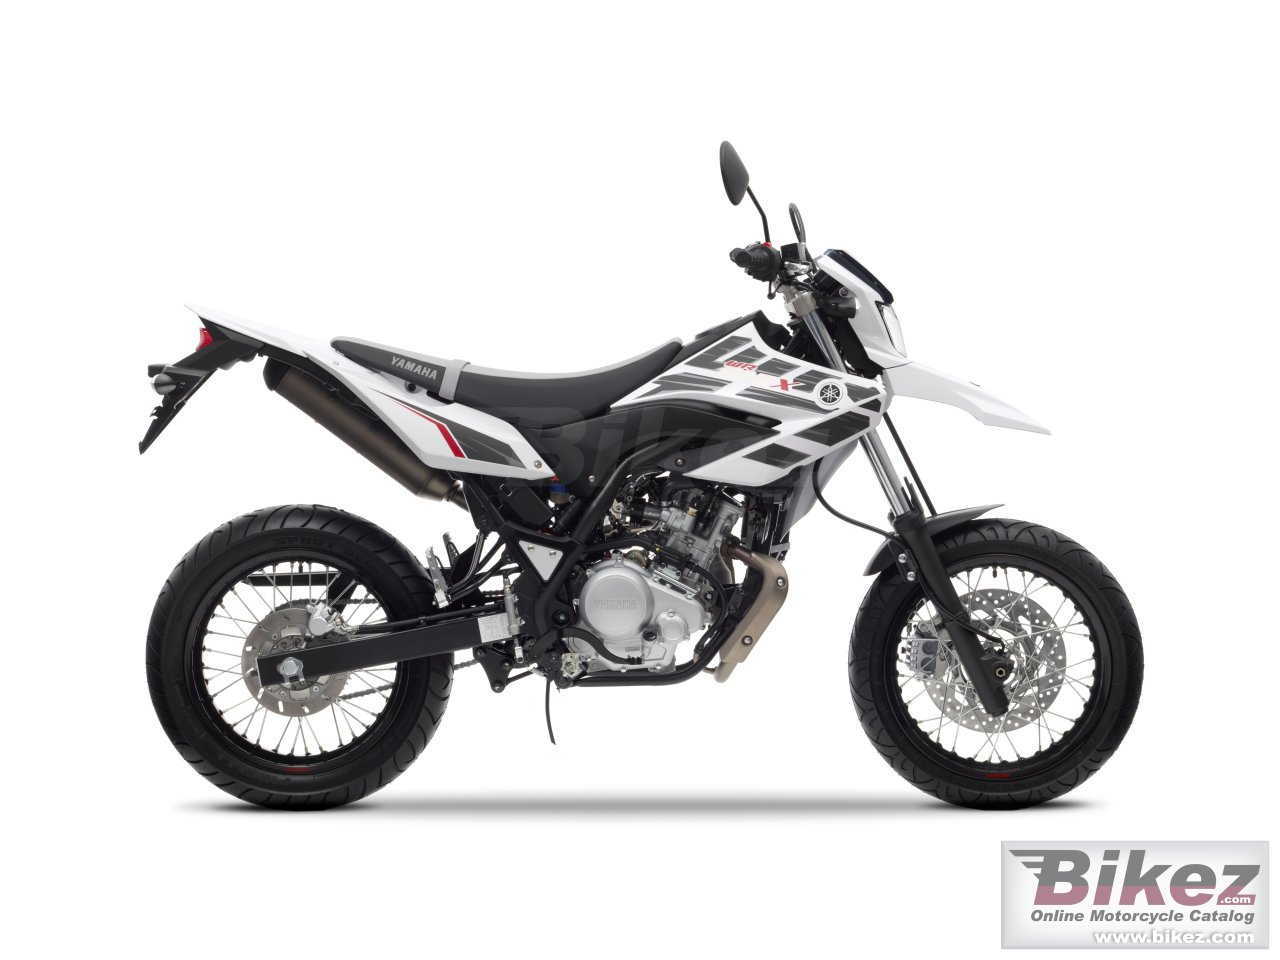 Big Yamaha wr125 x picture and wallpaper from Bikez.com